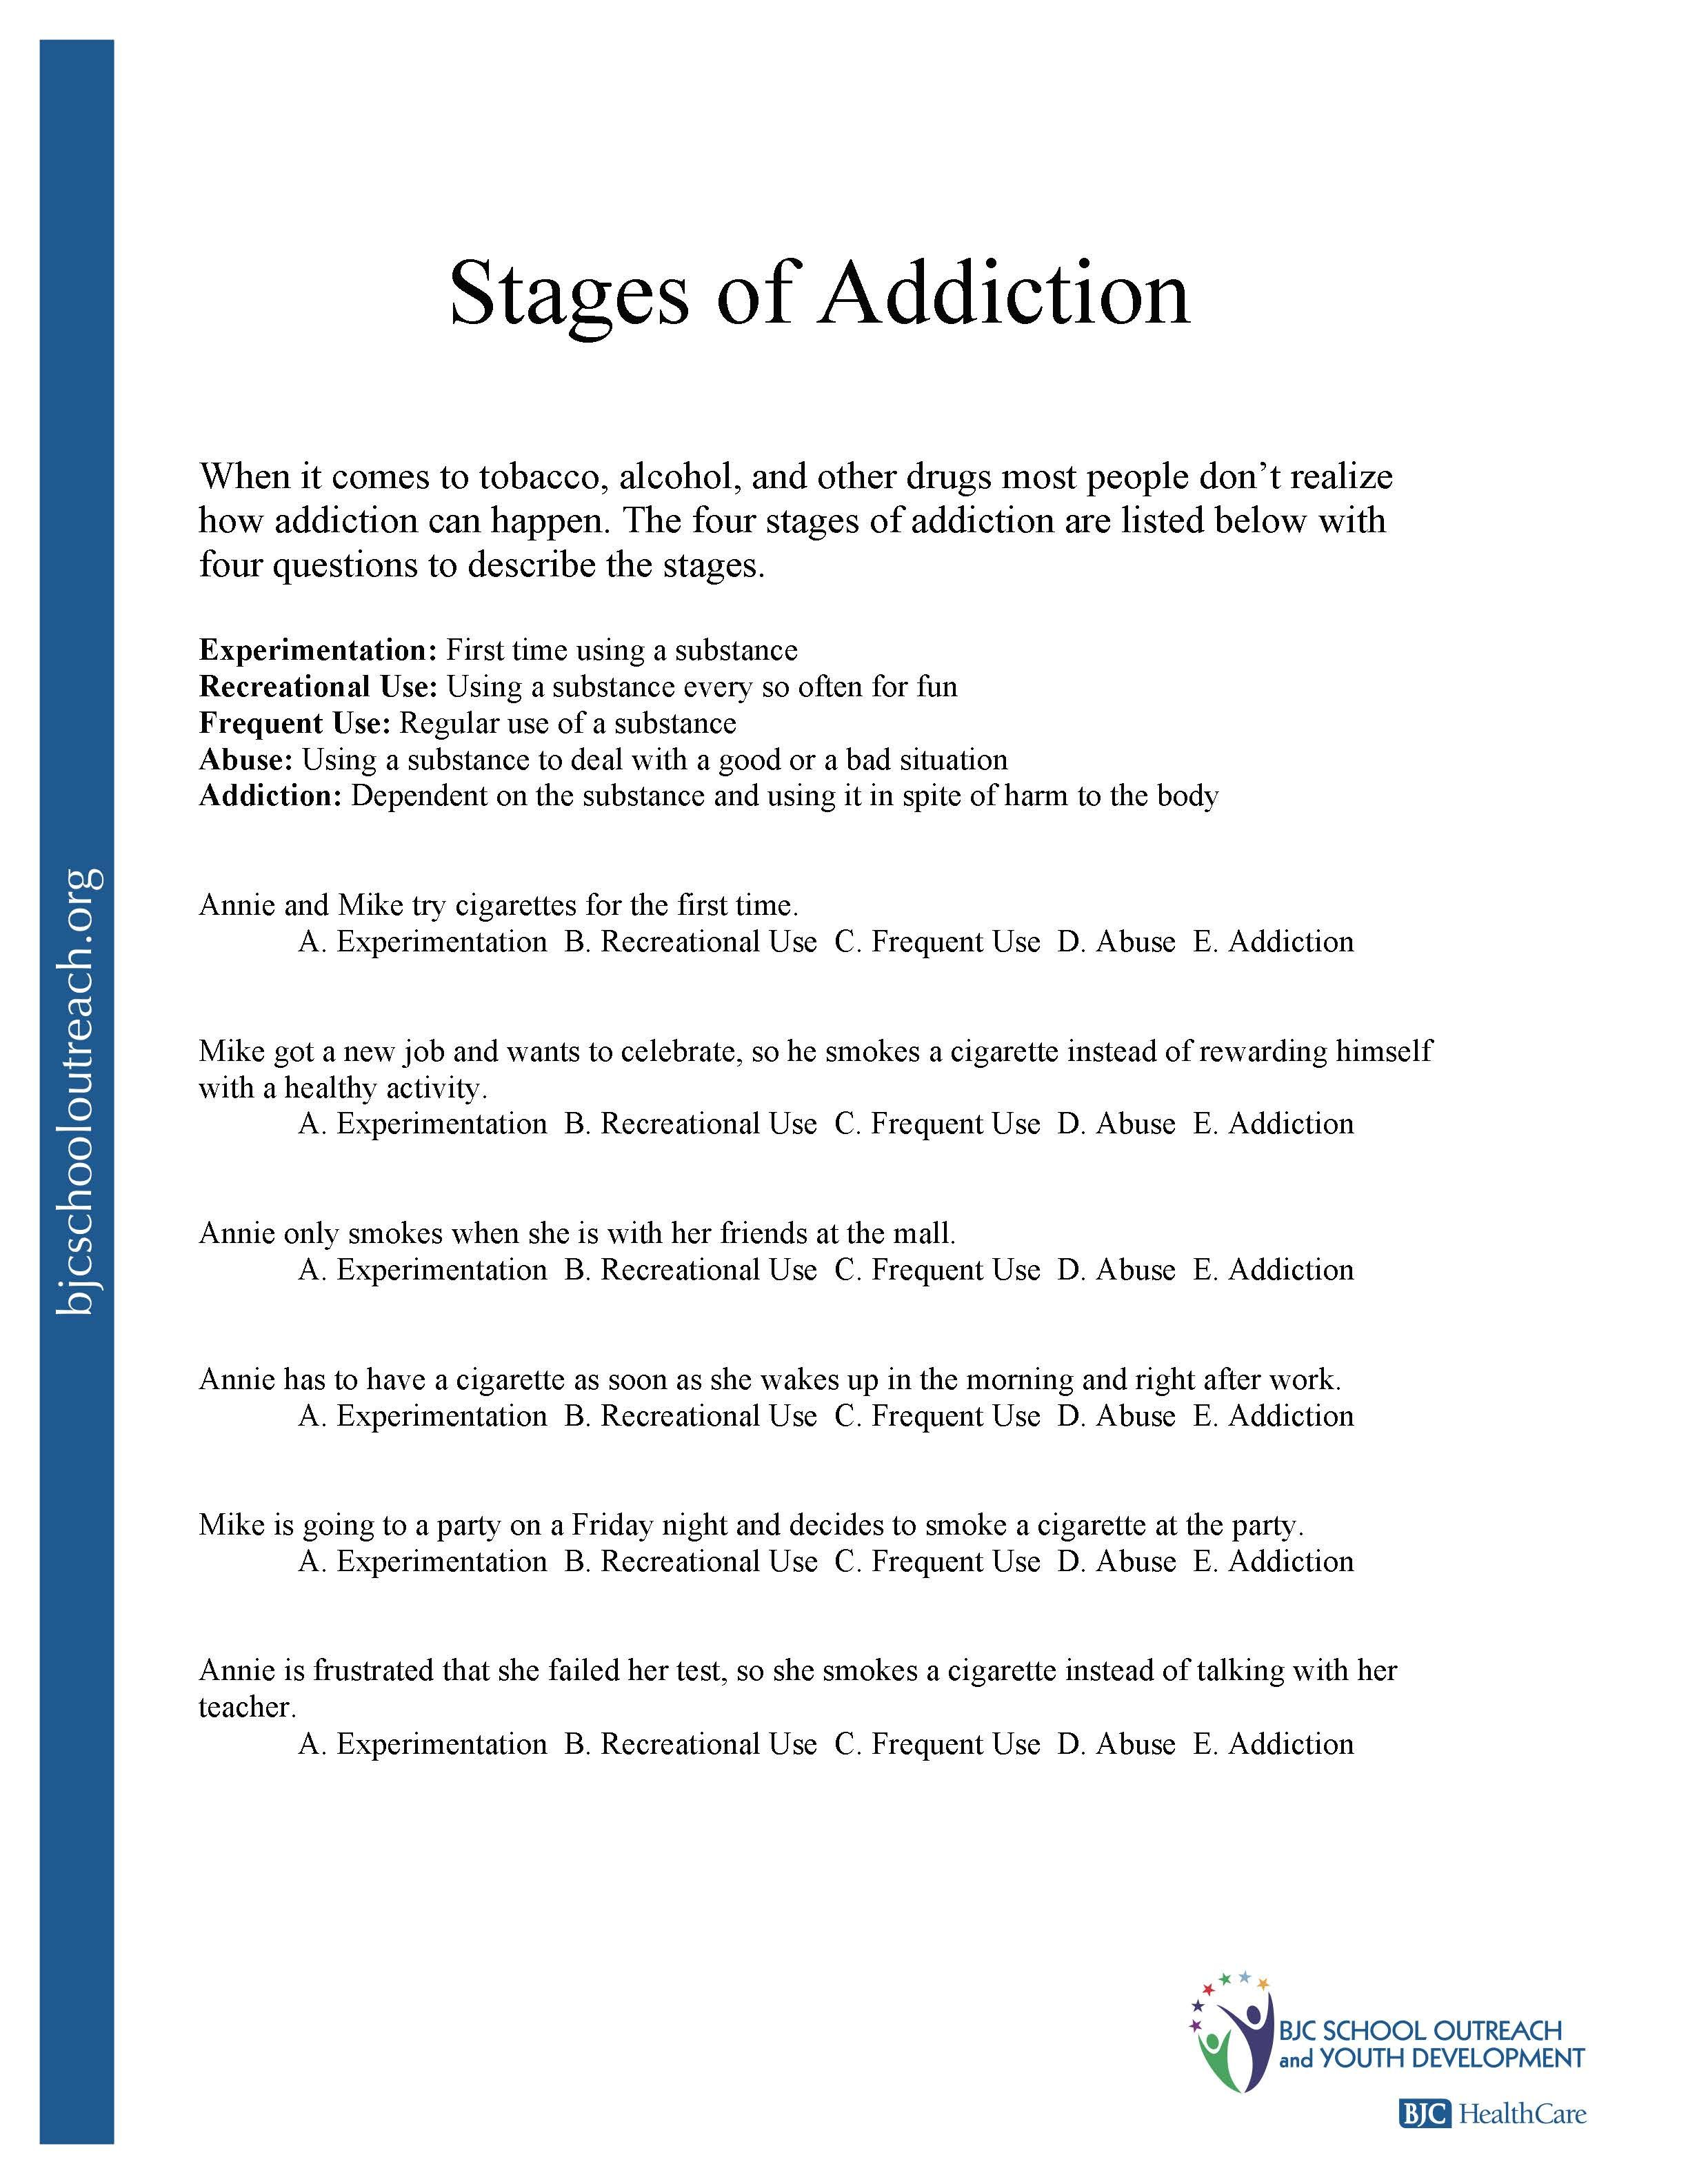 Worksheets High Risk Situations For Relapse Worksheet printable worksheets counseling help pinterest relapse preventioncounseling worksheetsprintable worksheets